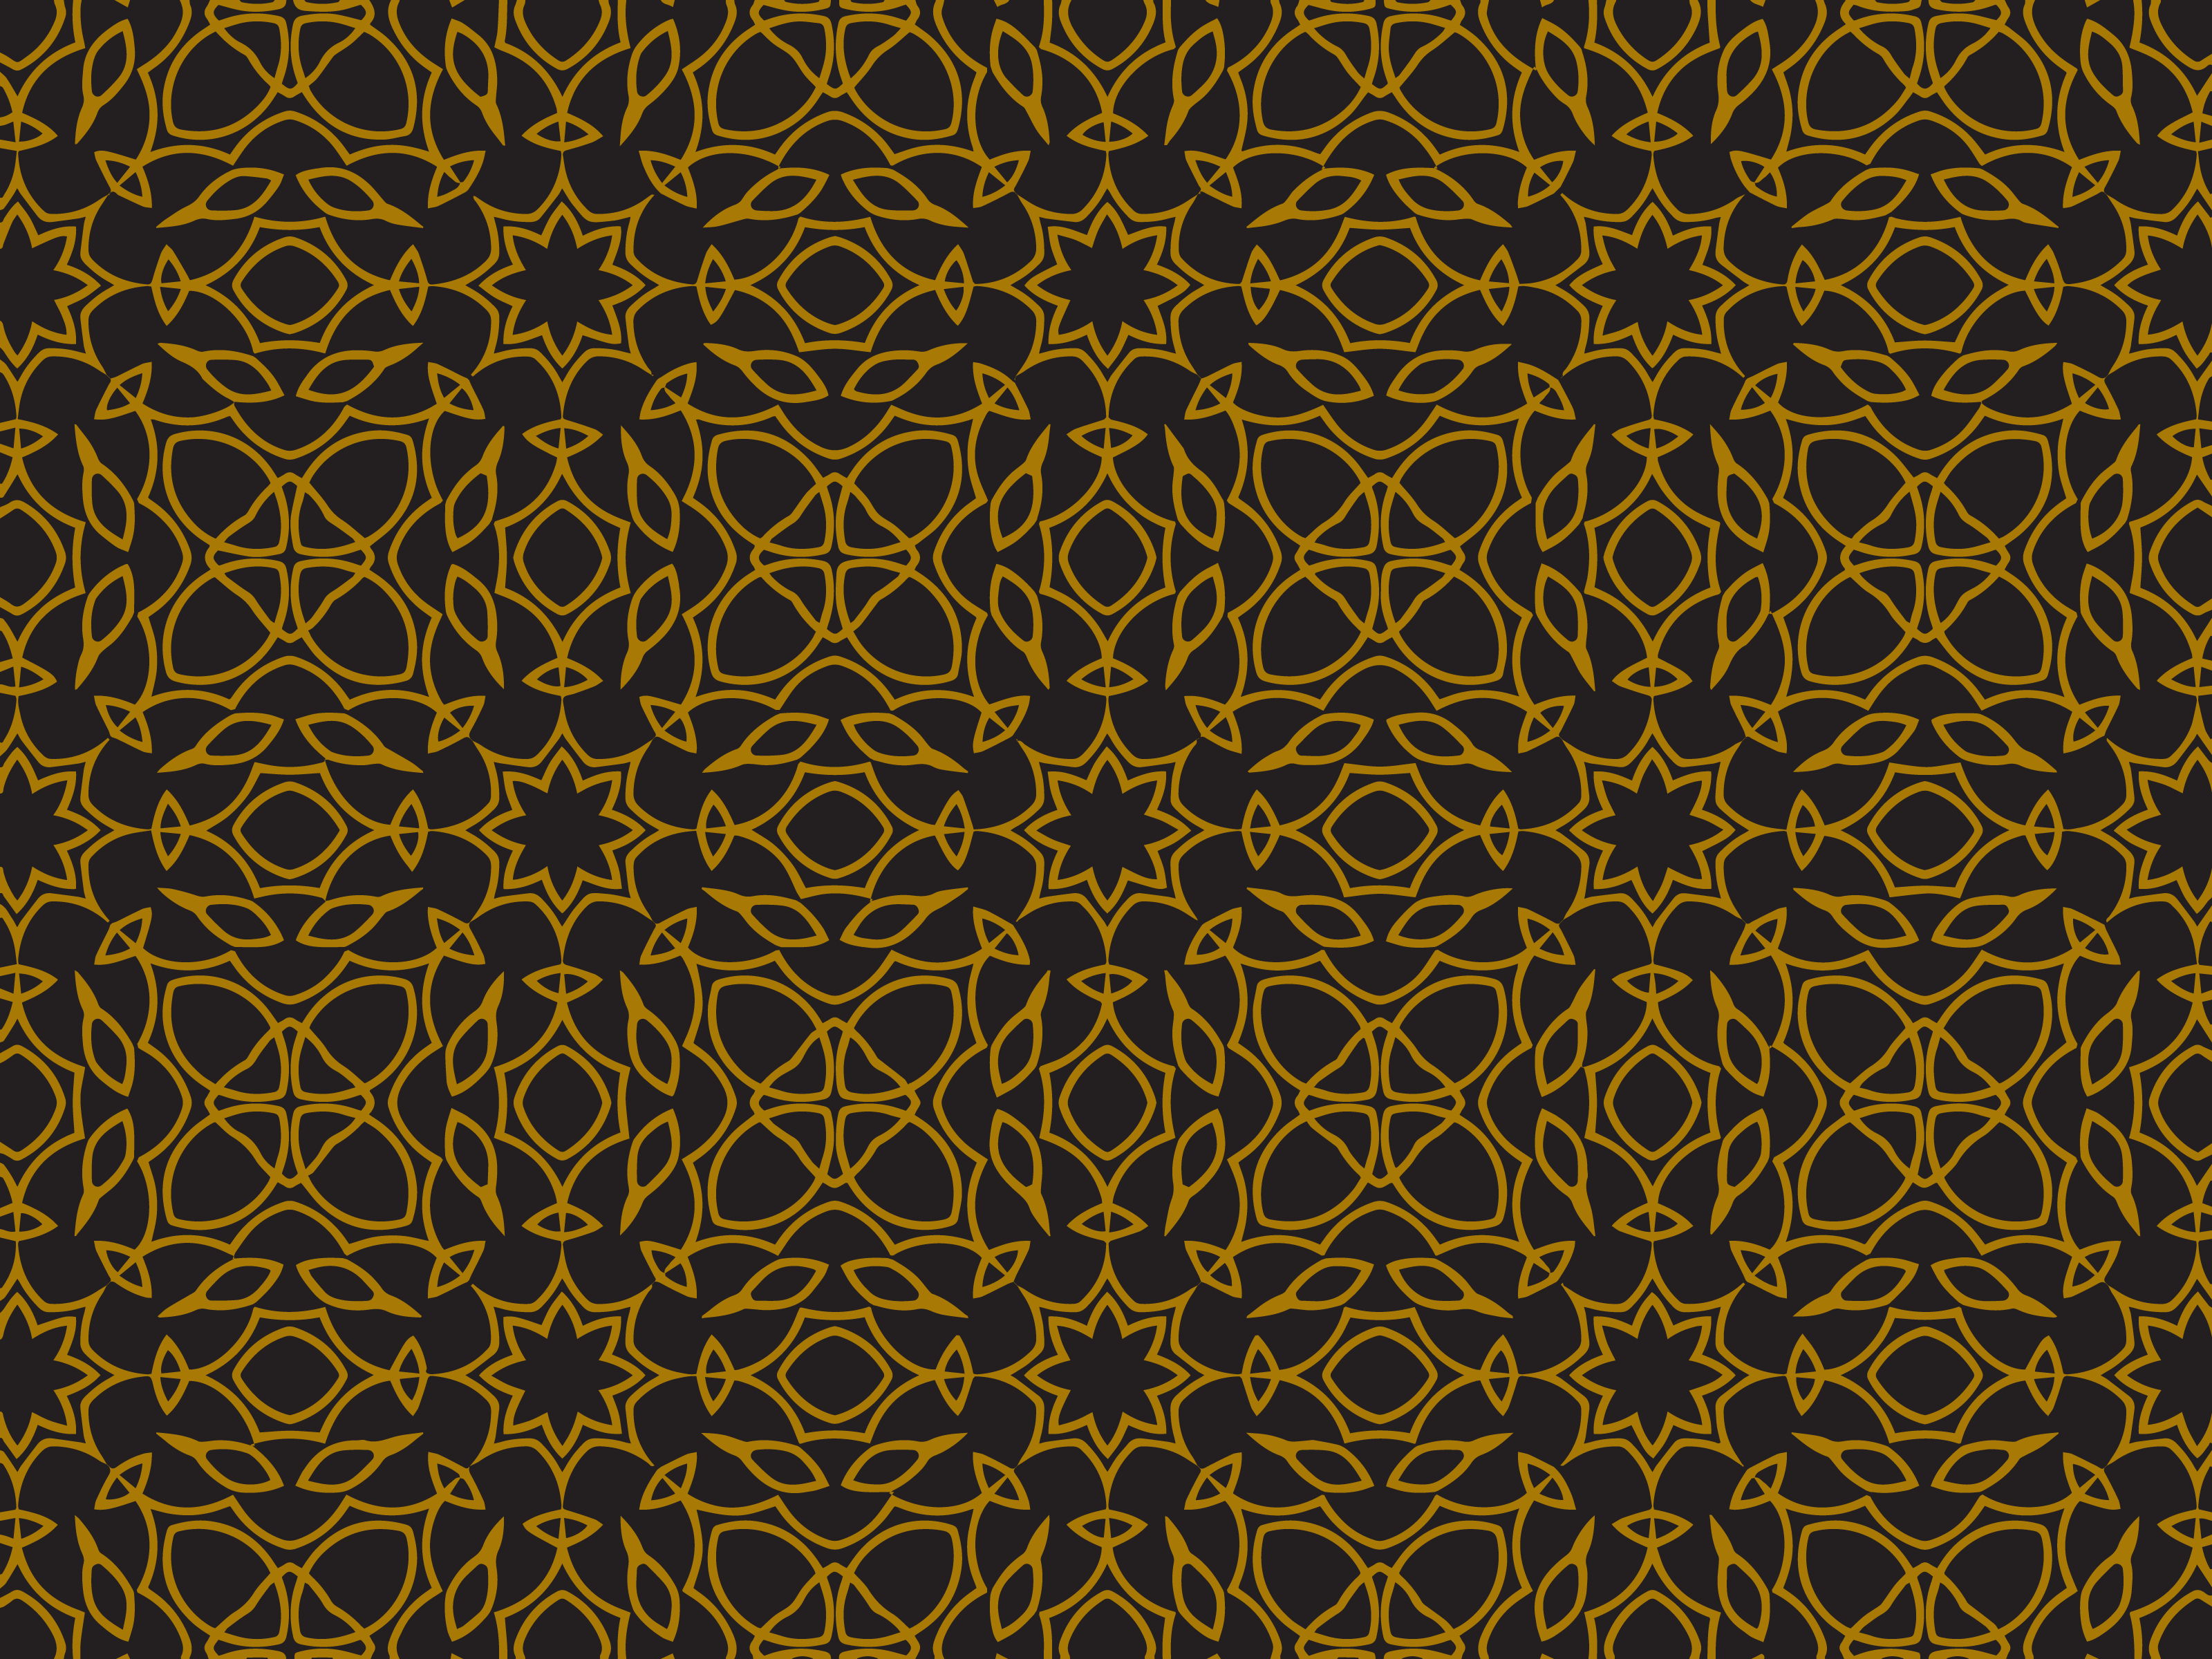 Download Free Pattern Gold Regular Abstract Lines Graphic By for Cricut Explore, Silhouette and other cutting machines.